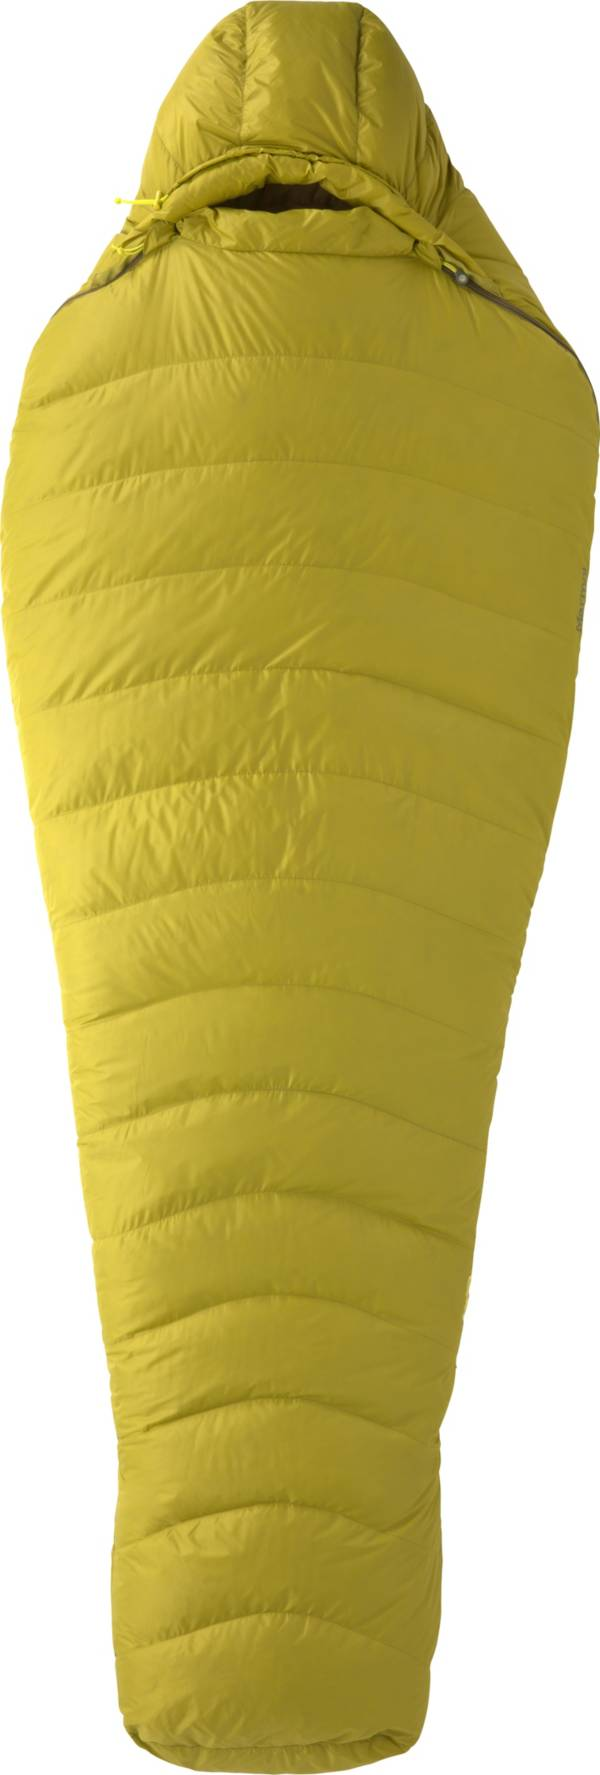 Marmot Hydrogen 30°F Sleeping Bag product image